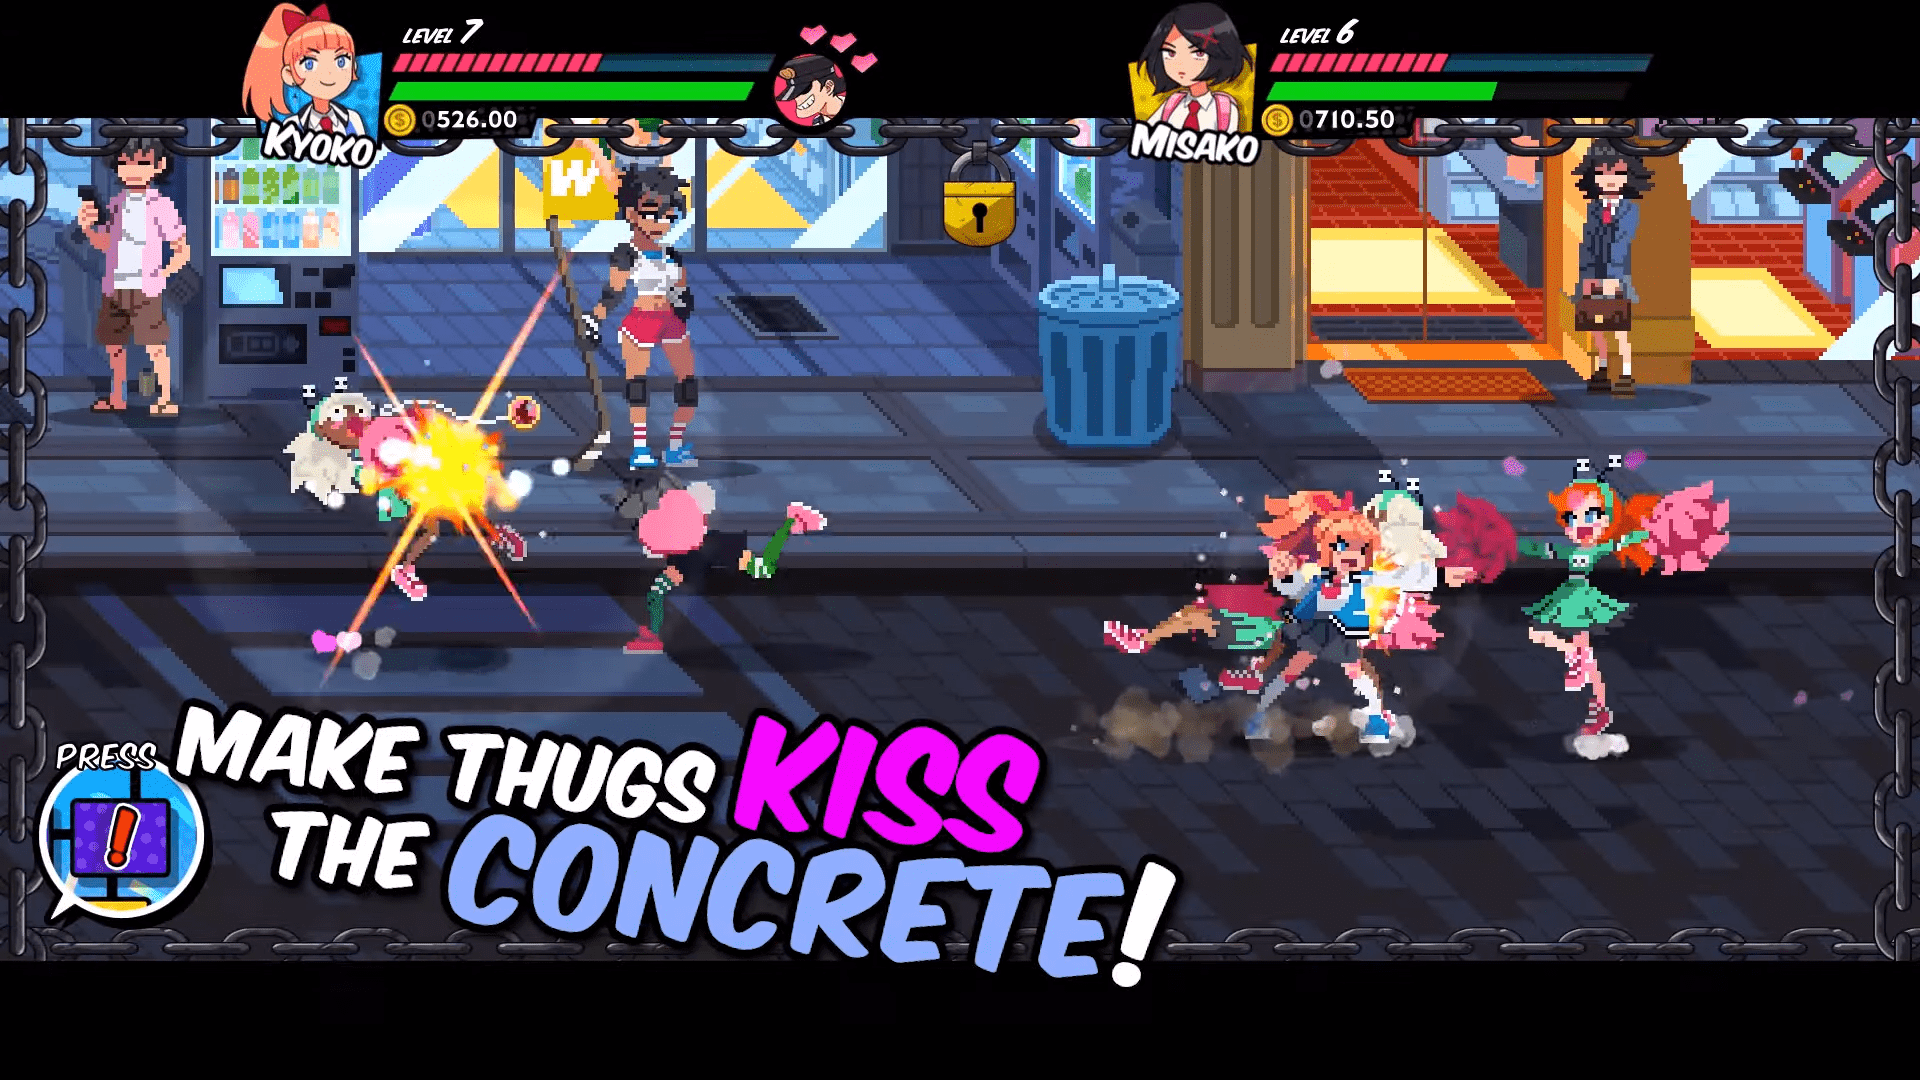 River City Girls Brings Patch 1.1 That Implements A New Ending, And Other Fixes